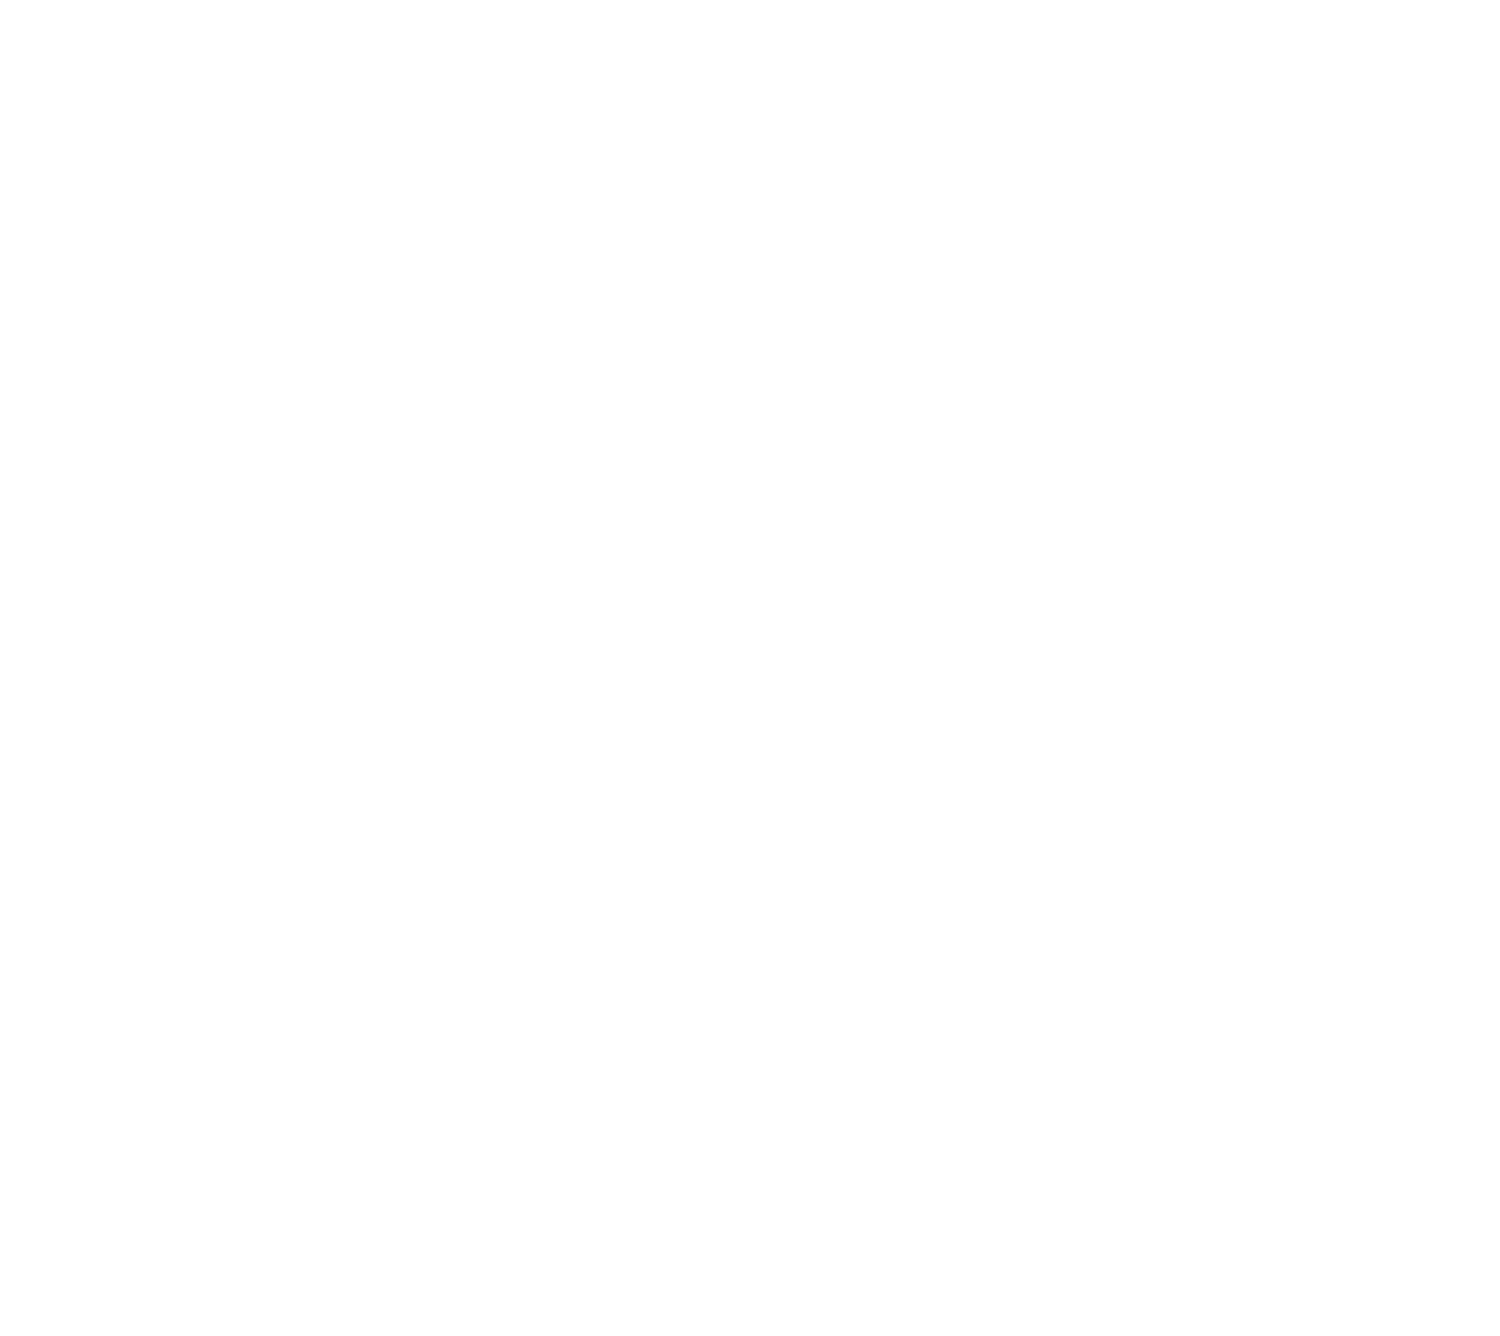 ACT Language Schools